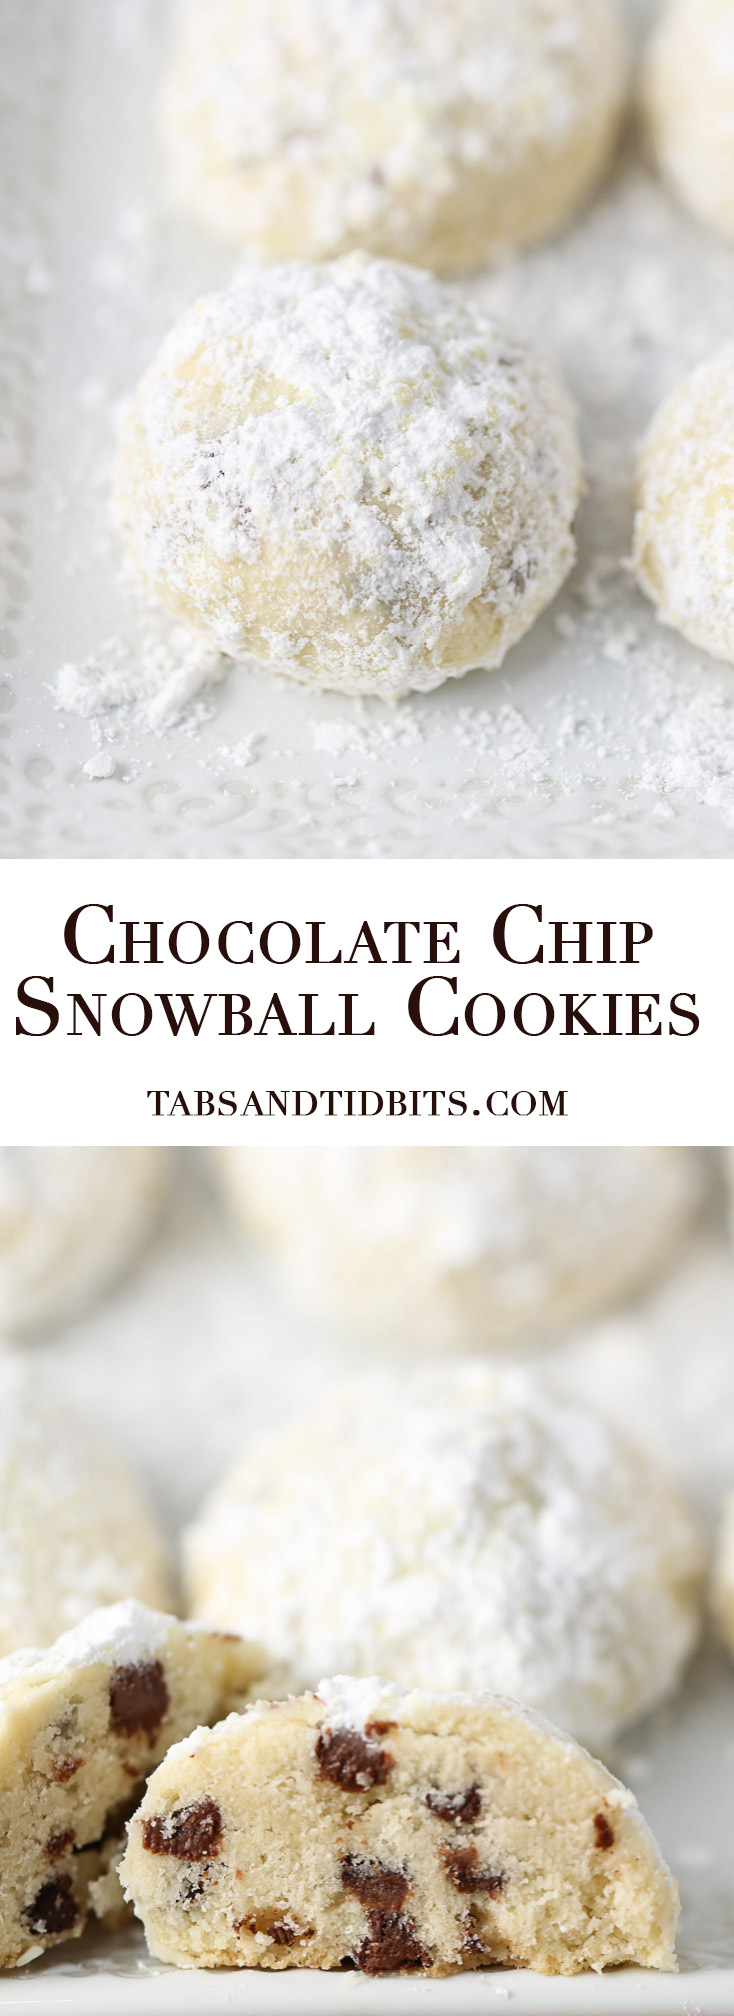 Chocolate Chip Snowball Cookies - A buttery melt in your mouth cookie filled with mini chocolate chips and coated with soft powdered sugar!